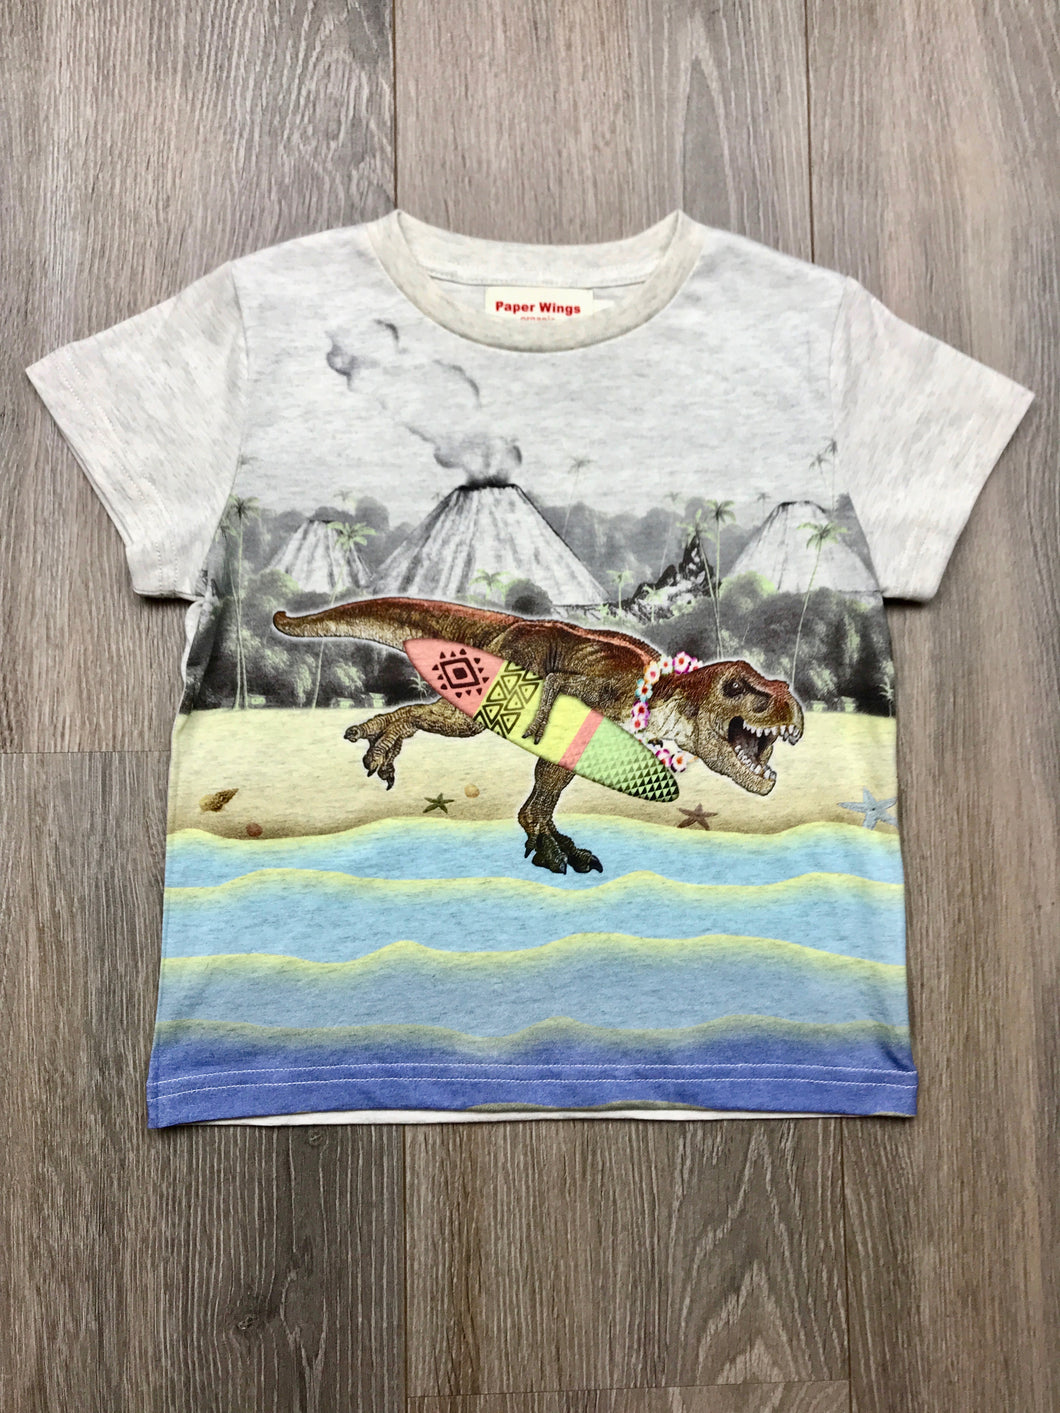 Paper Wings Boys Dinosaur Surfer T-shirt